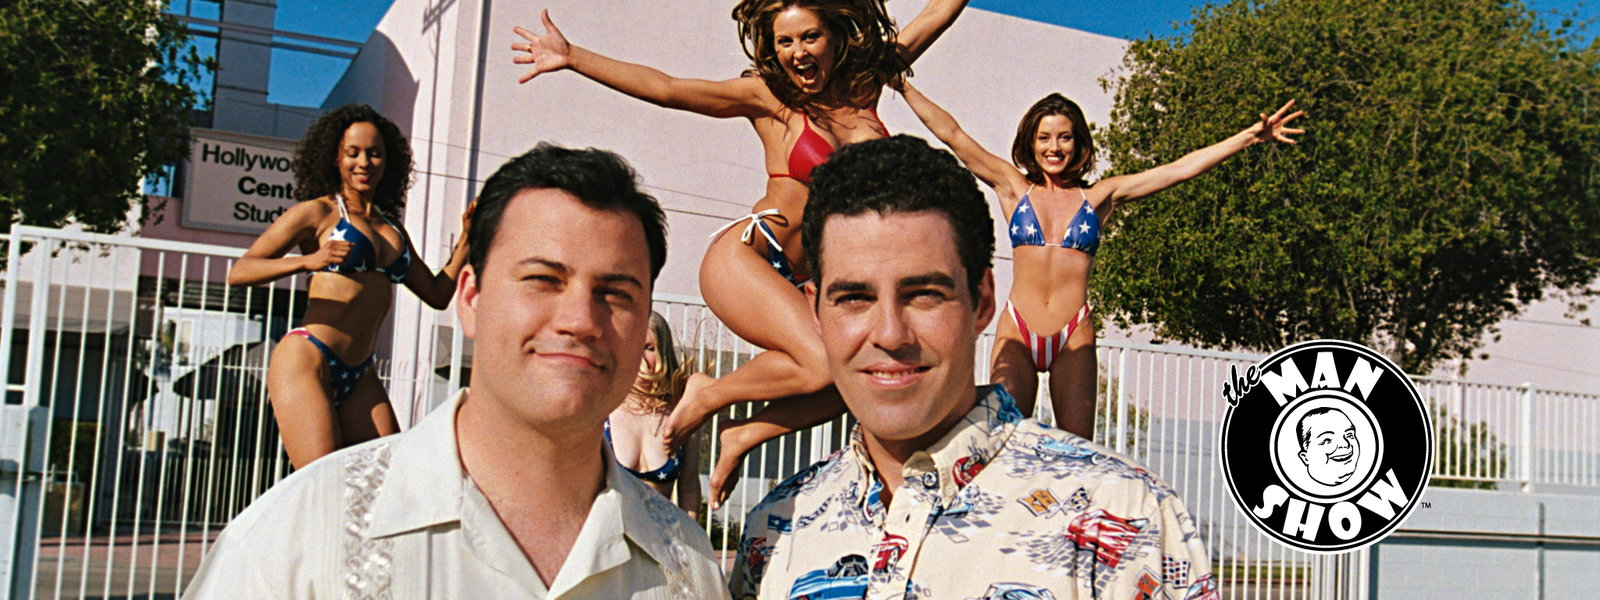 The Daily Binge: 5/9/2016 - Early Jimmy Kimmel